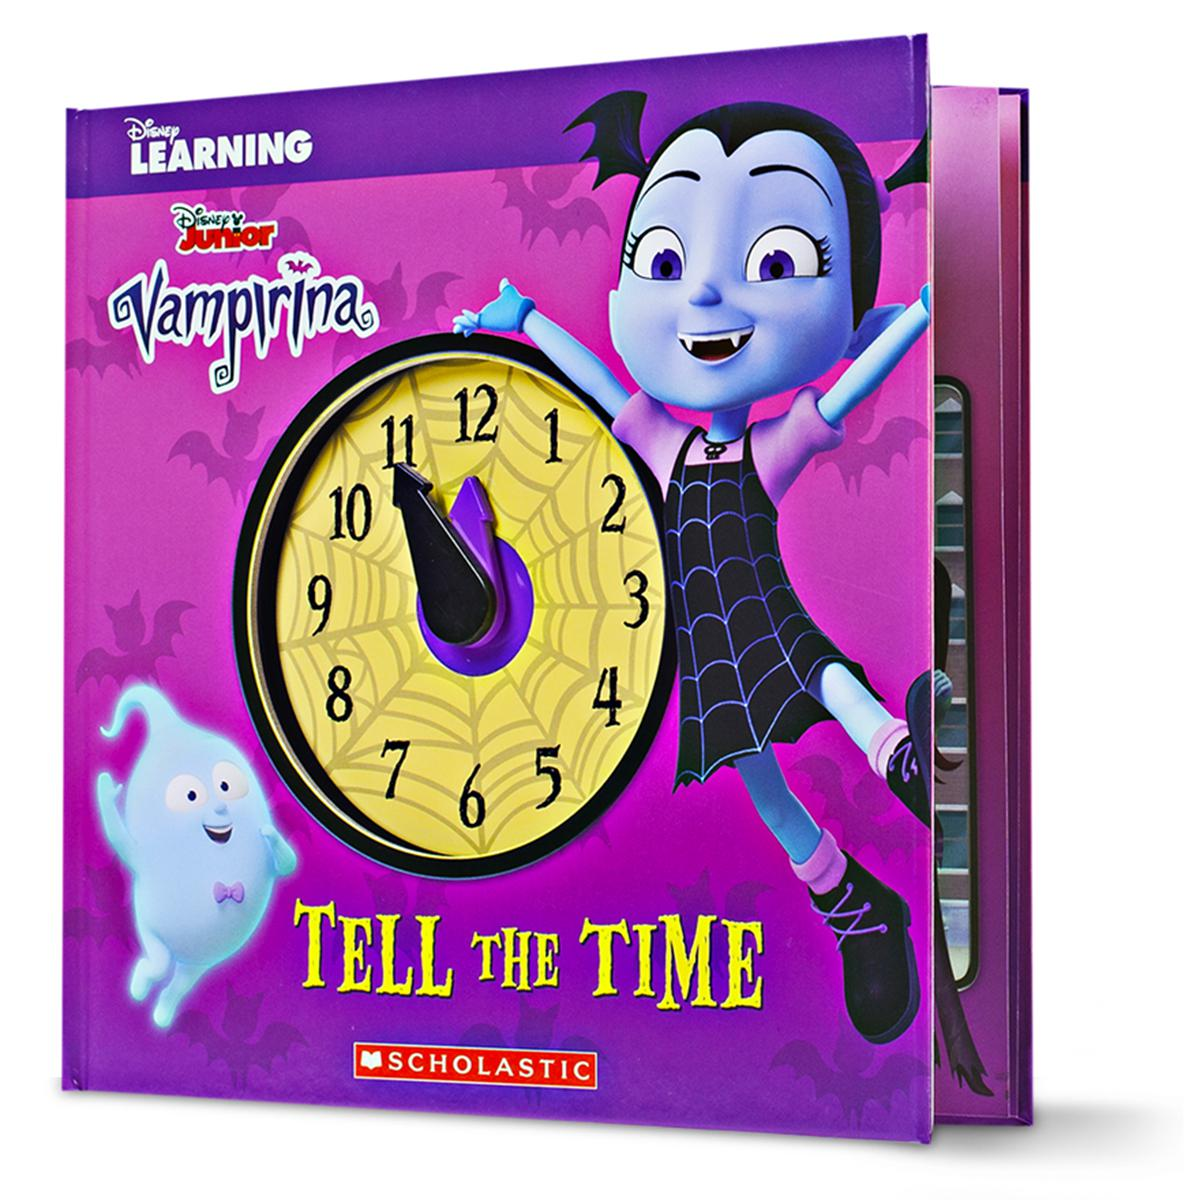 Disney Learning: Vampirina Tell the Time